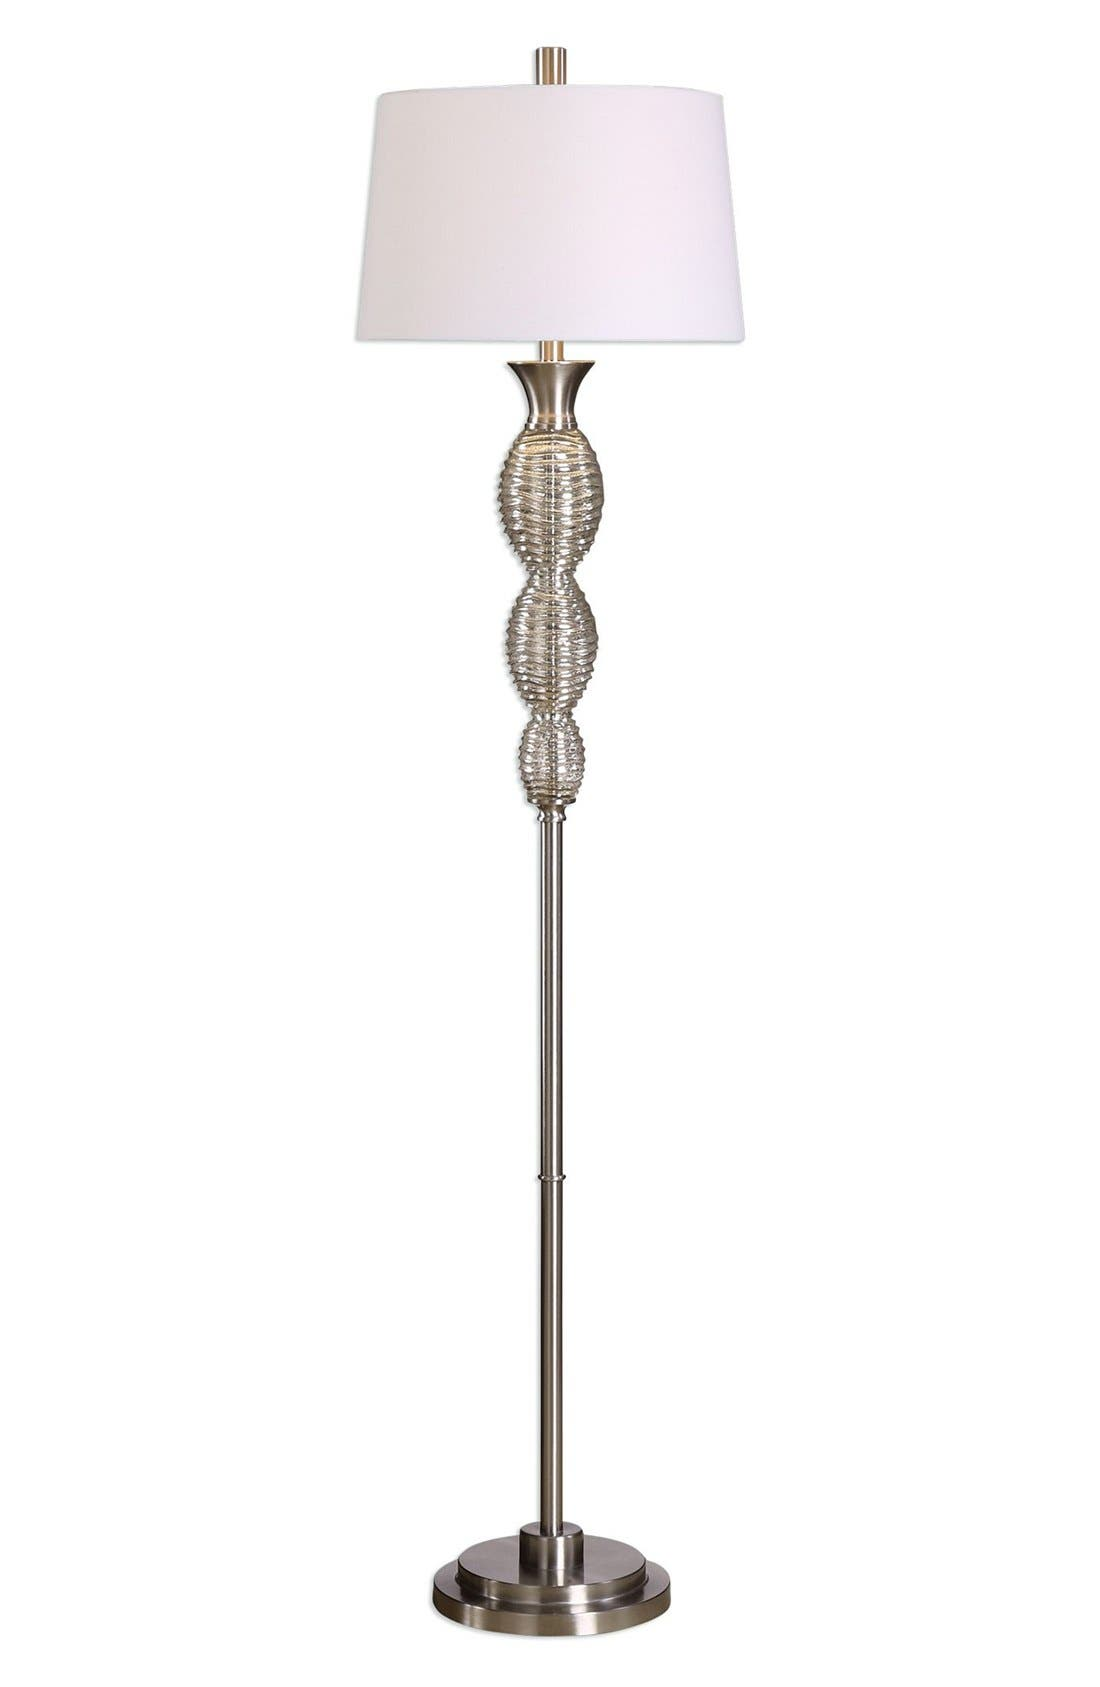 Mercury Glass Floor Lamp,                         Main,                         color, Metallic Silver